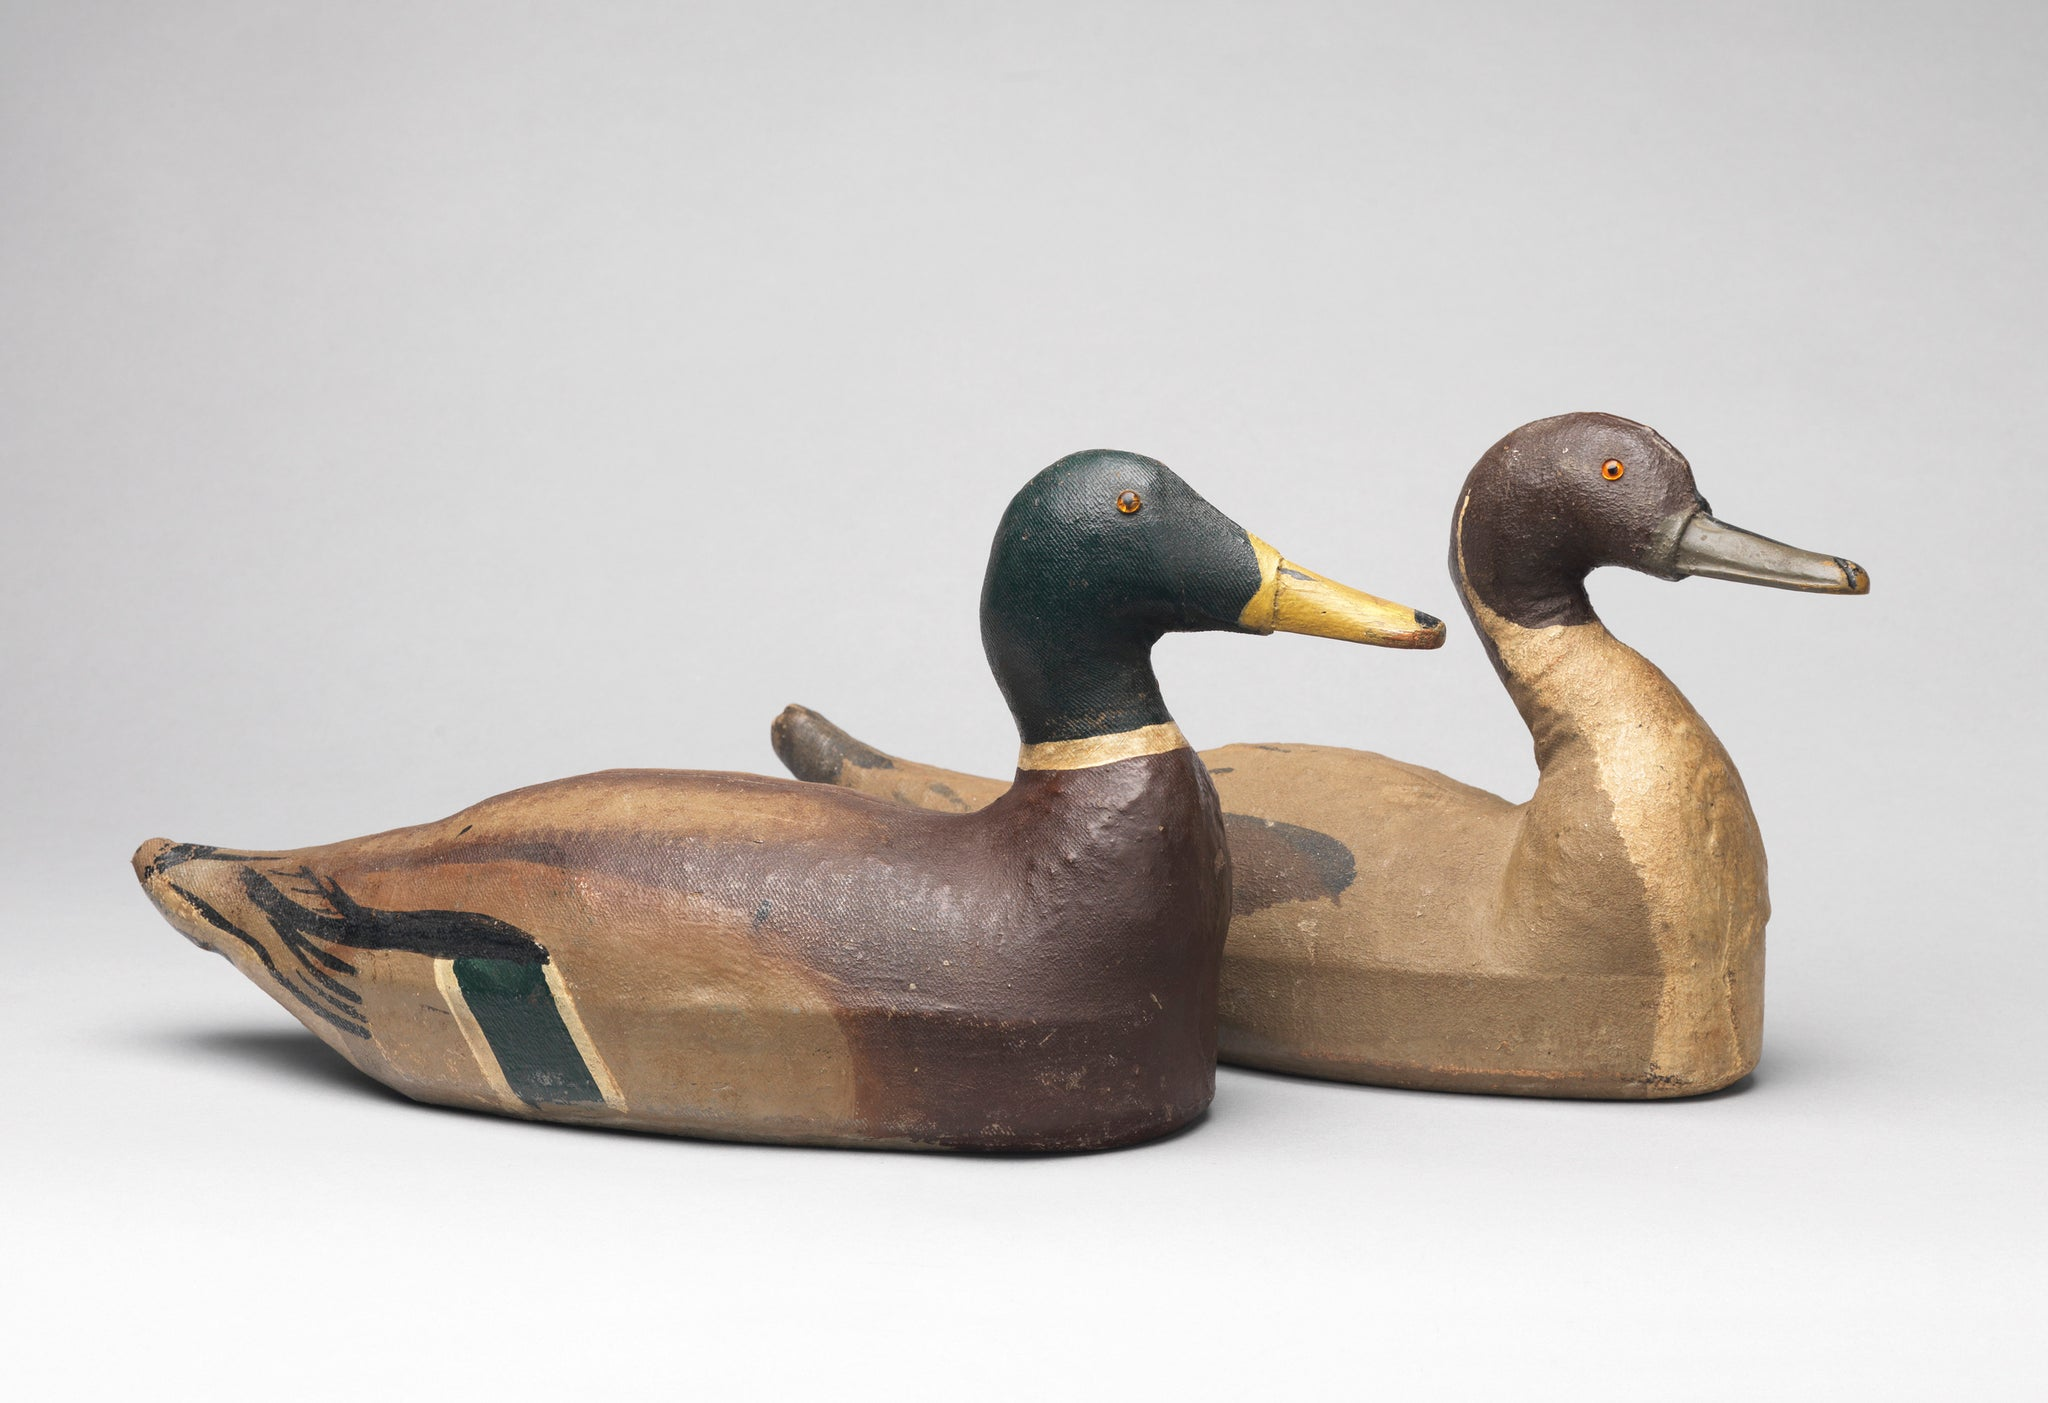 Two Wildfowlers Duck Decoys